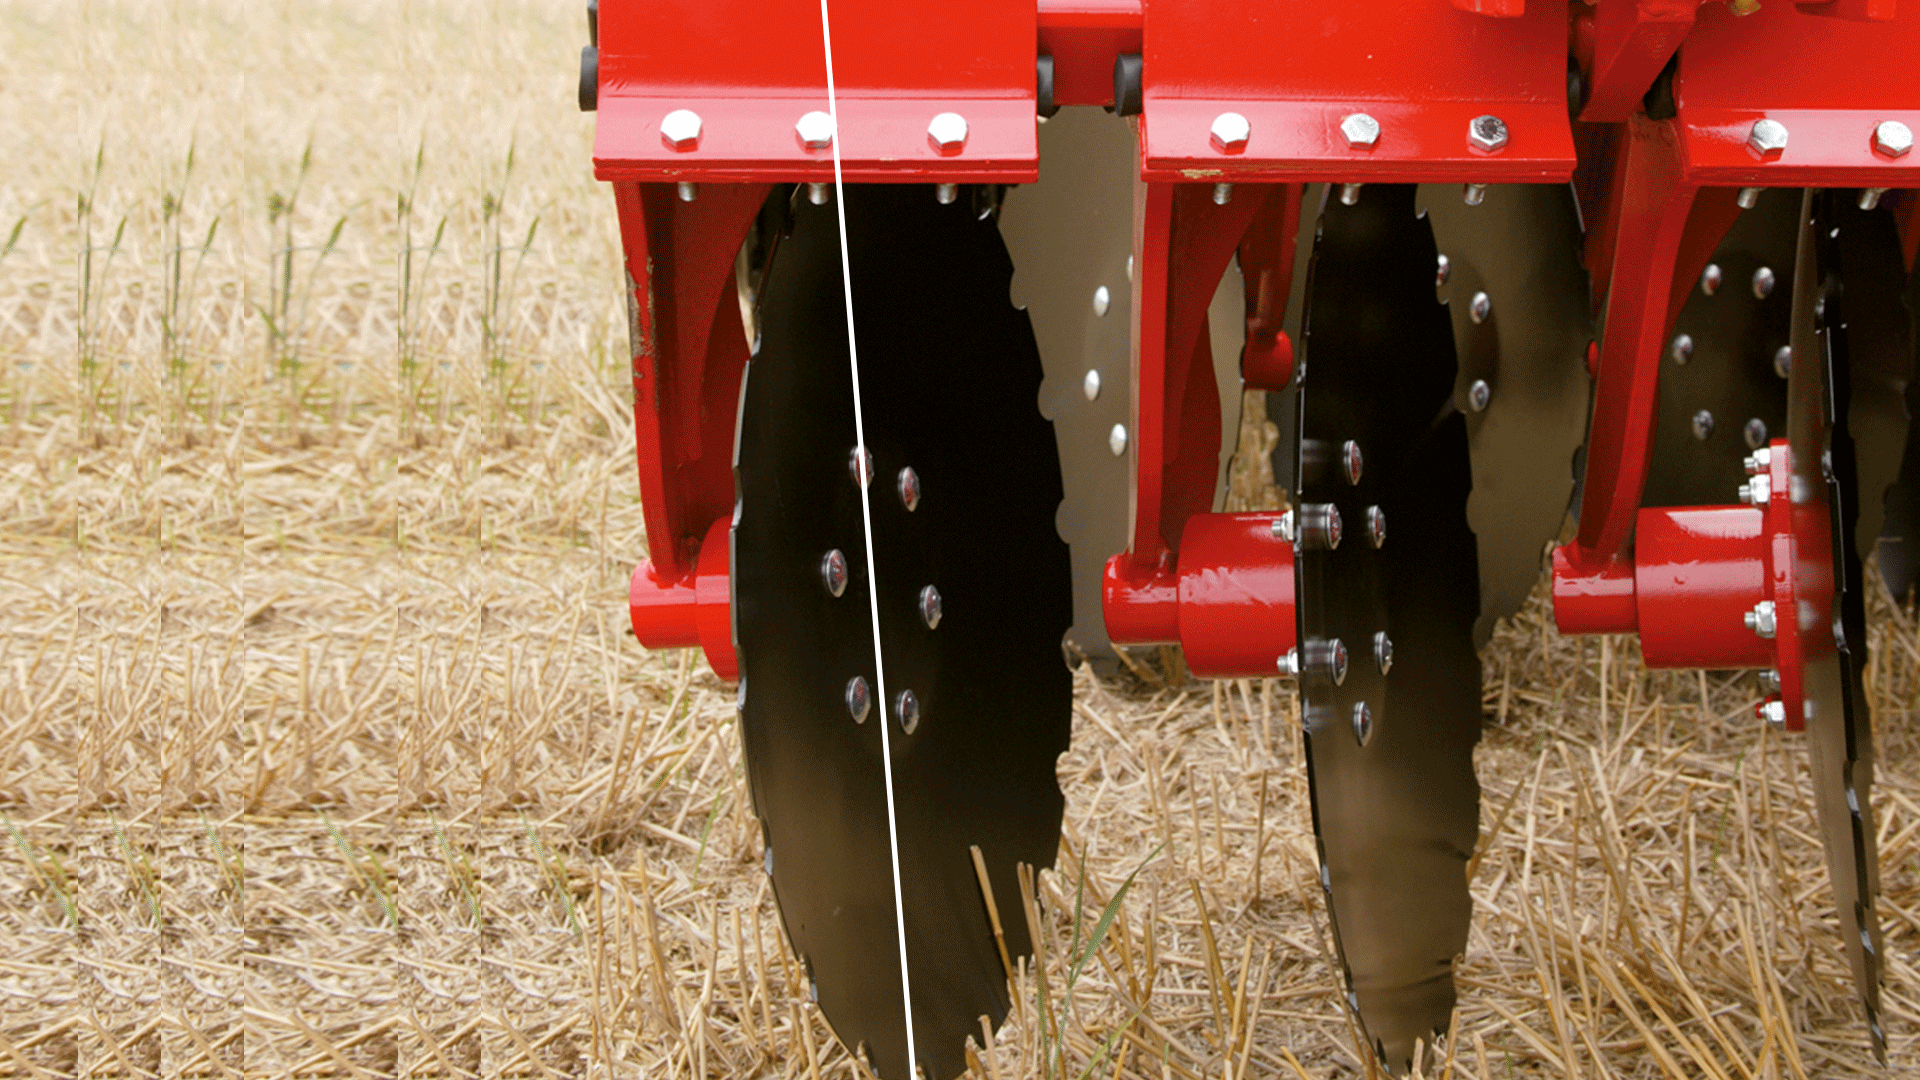 When the Combi-Disc is being used as a deep cultivator for residue mixing and incorporation, a more aggressive disc angle is required. The DSD-System automatically increases the aggressiveness of the disc angle relative to the soil surface. All this happens automatically and hydraulically as the depth of the discs is being altered by the tractor driver.